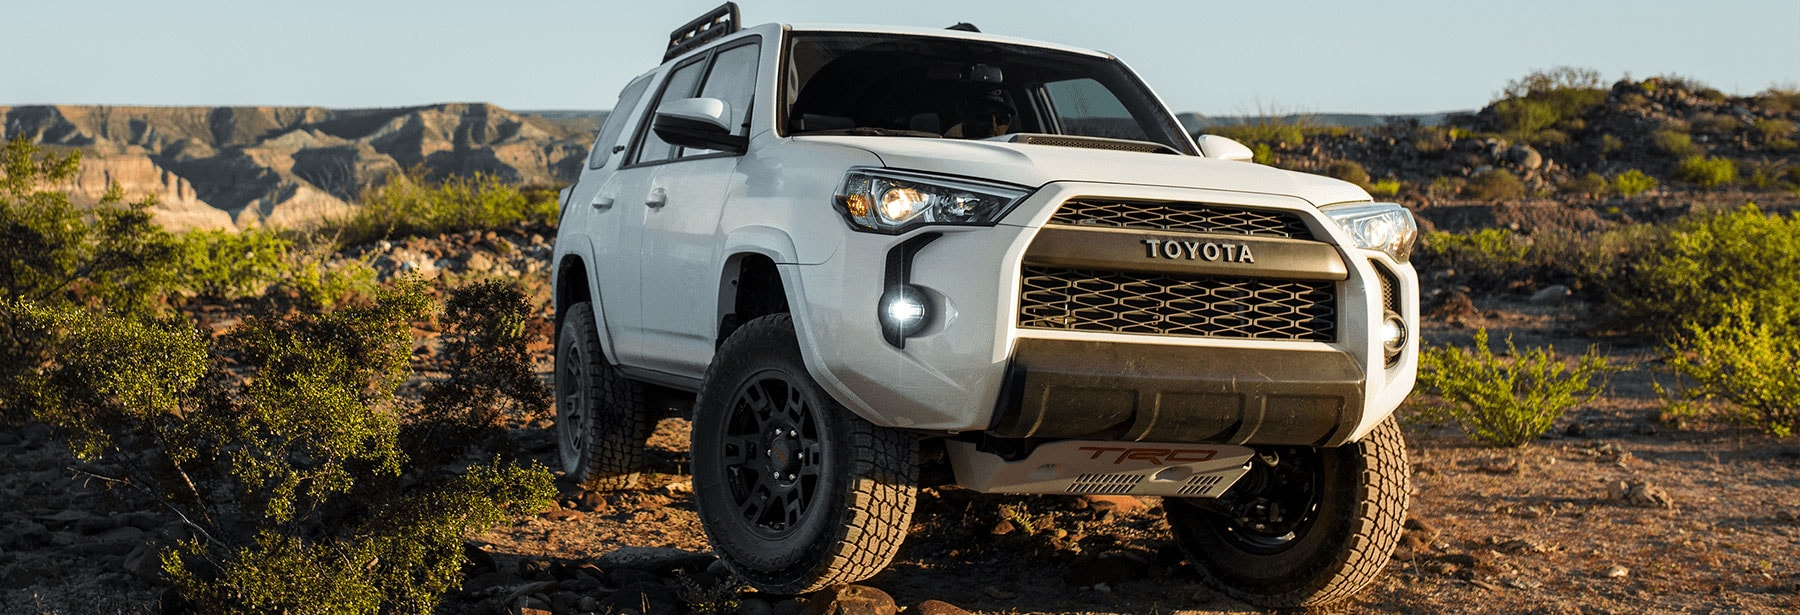 Toyota 4Runner Exterior Vehicle Features